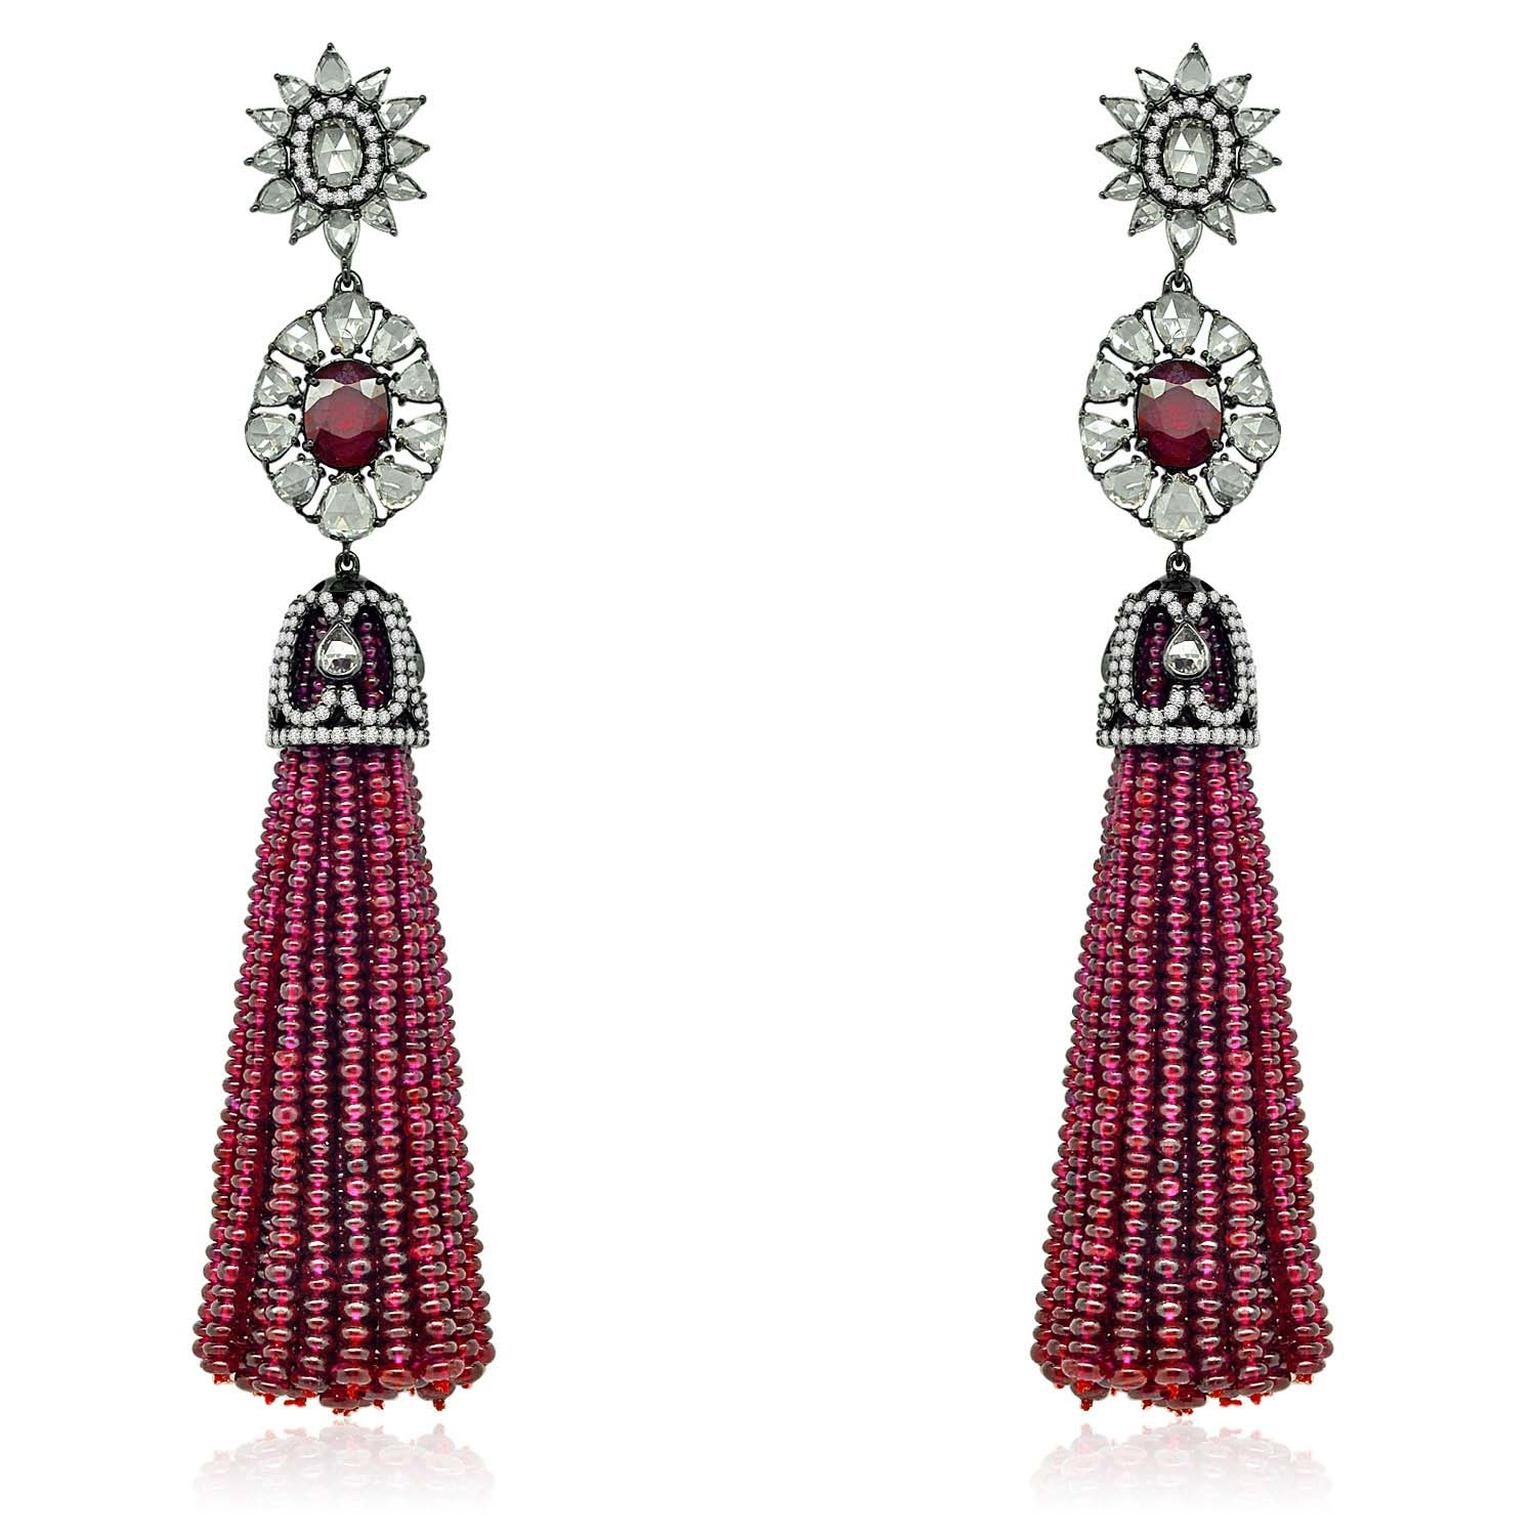 Sutra ruby bead tassel earrings with Burmese rubies and rose-cut diamonds in black gold.